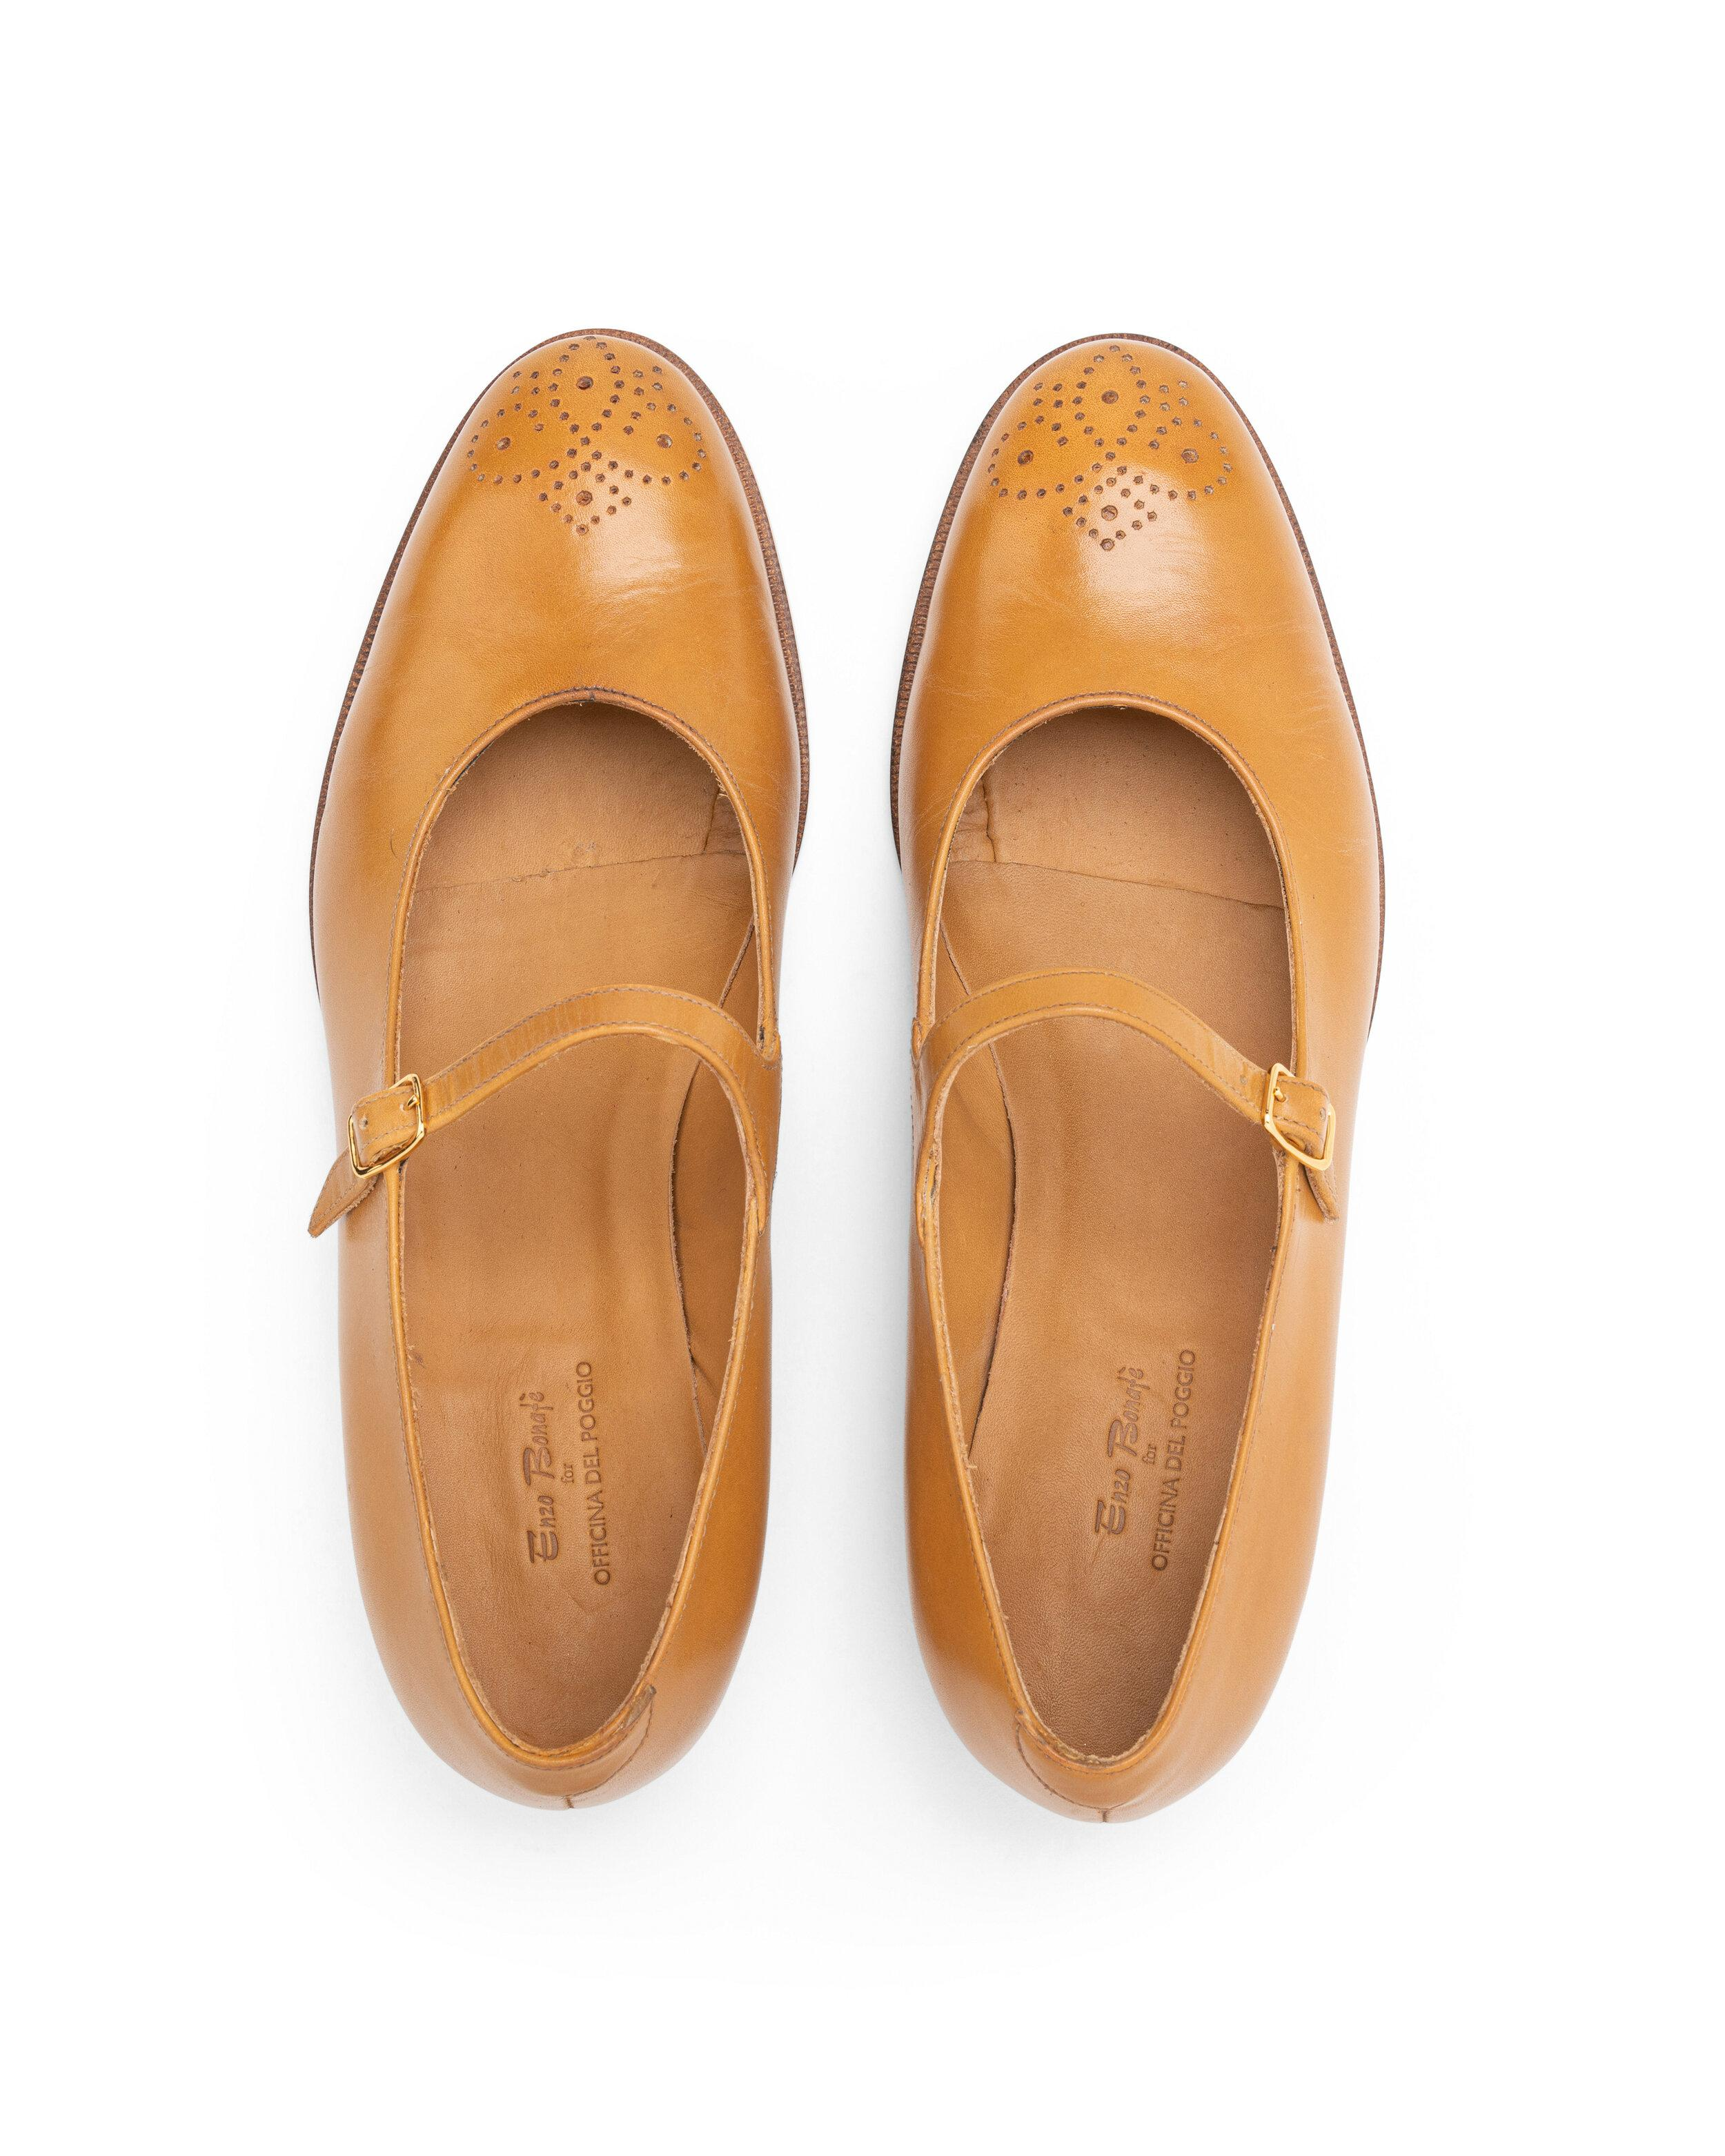 ODPEssentials Classic Mary Jane - Honey Leather 1